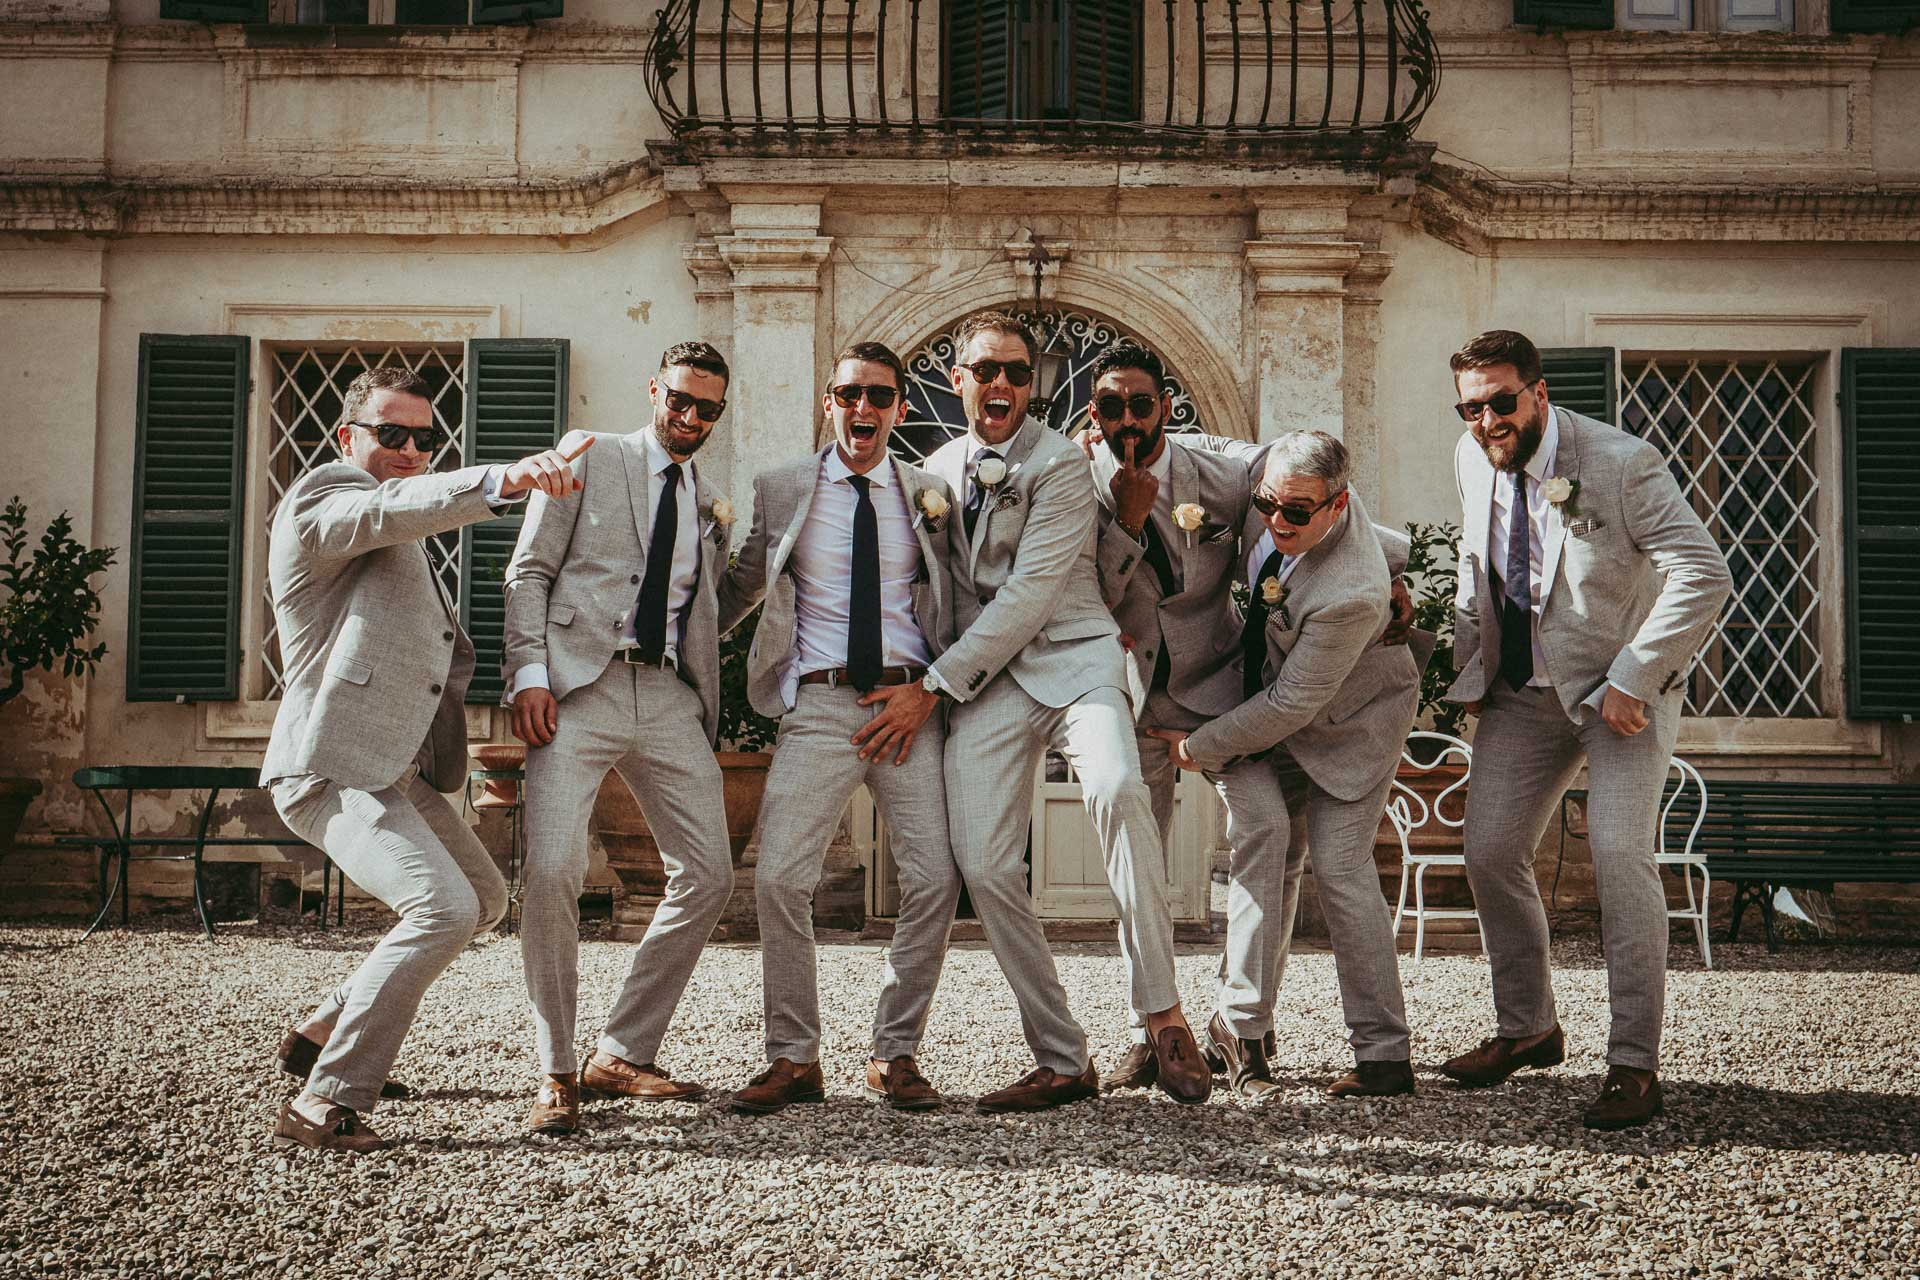 The Groom with his Friends